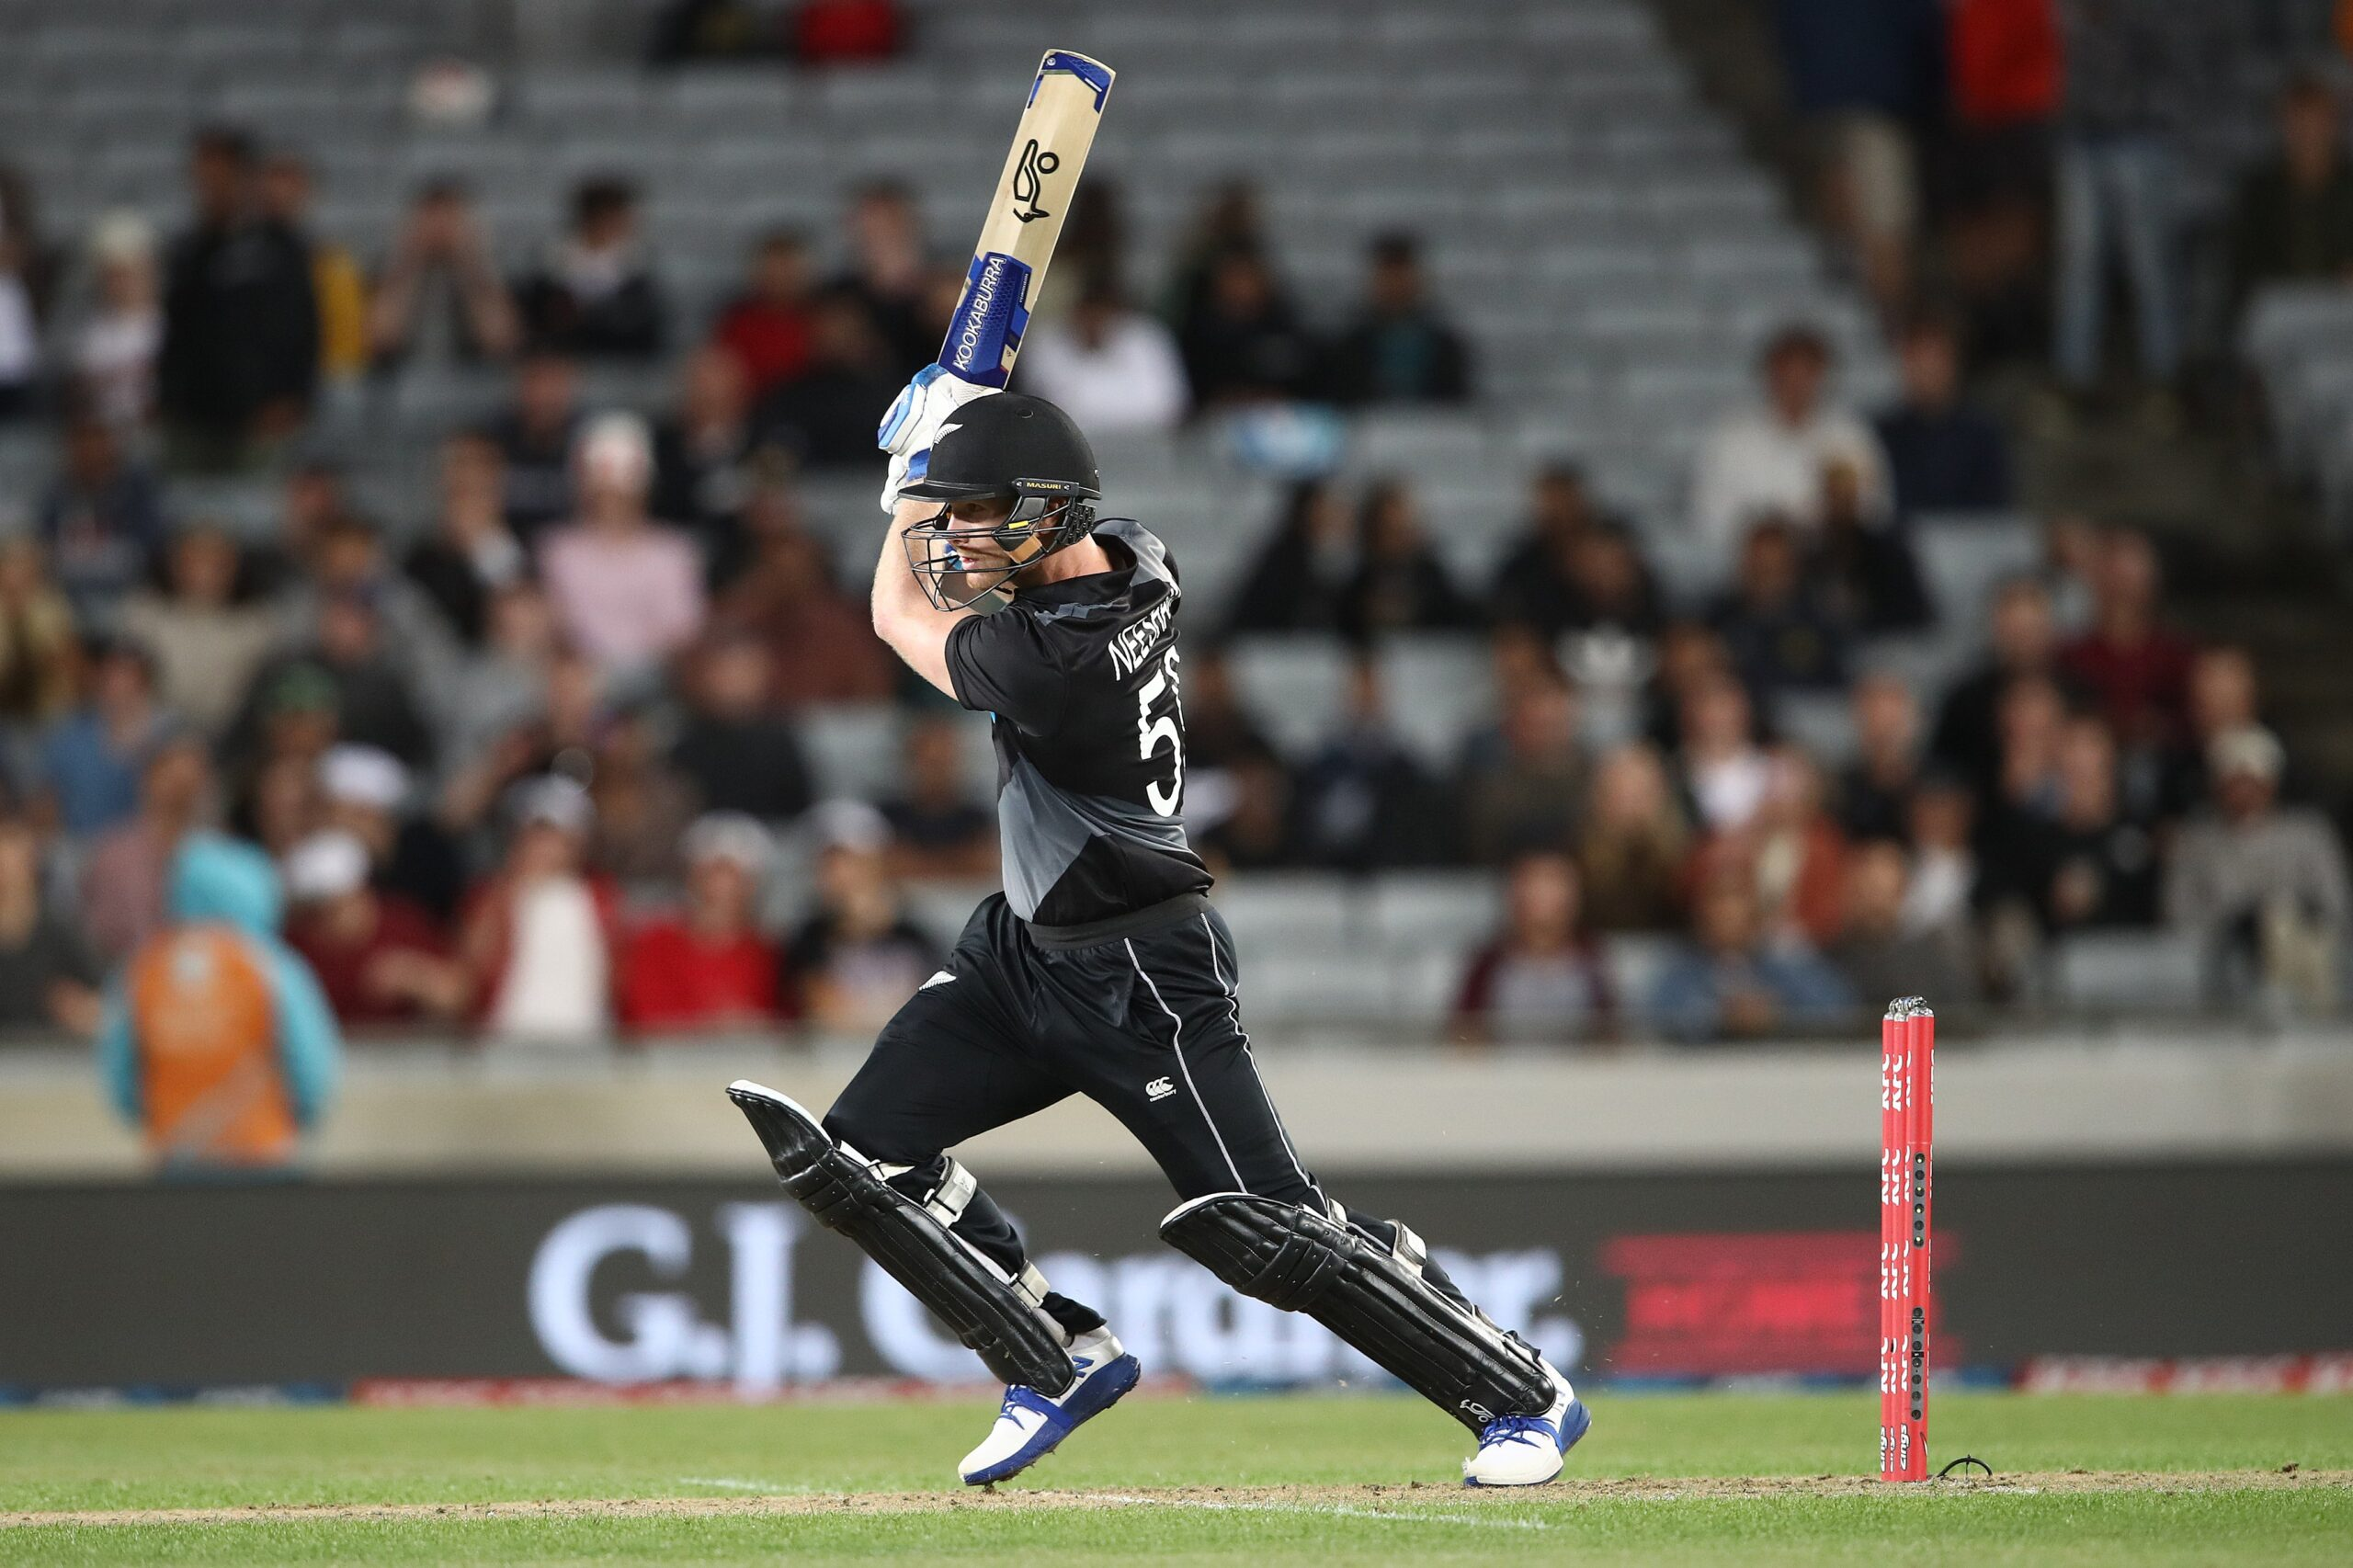 Jimmy Neesham being hilarious after Glenn Maxwell and his performance stars in international cricket followed by poor IPL